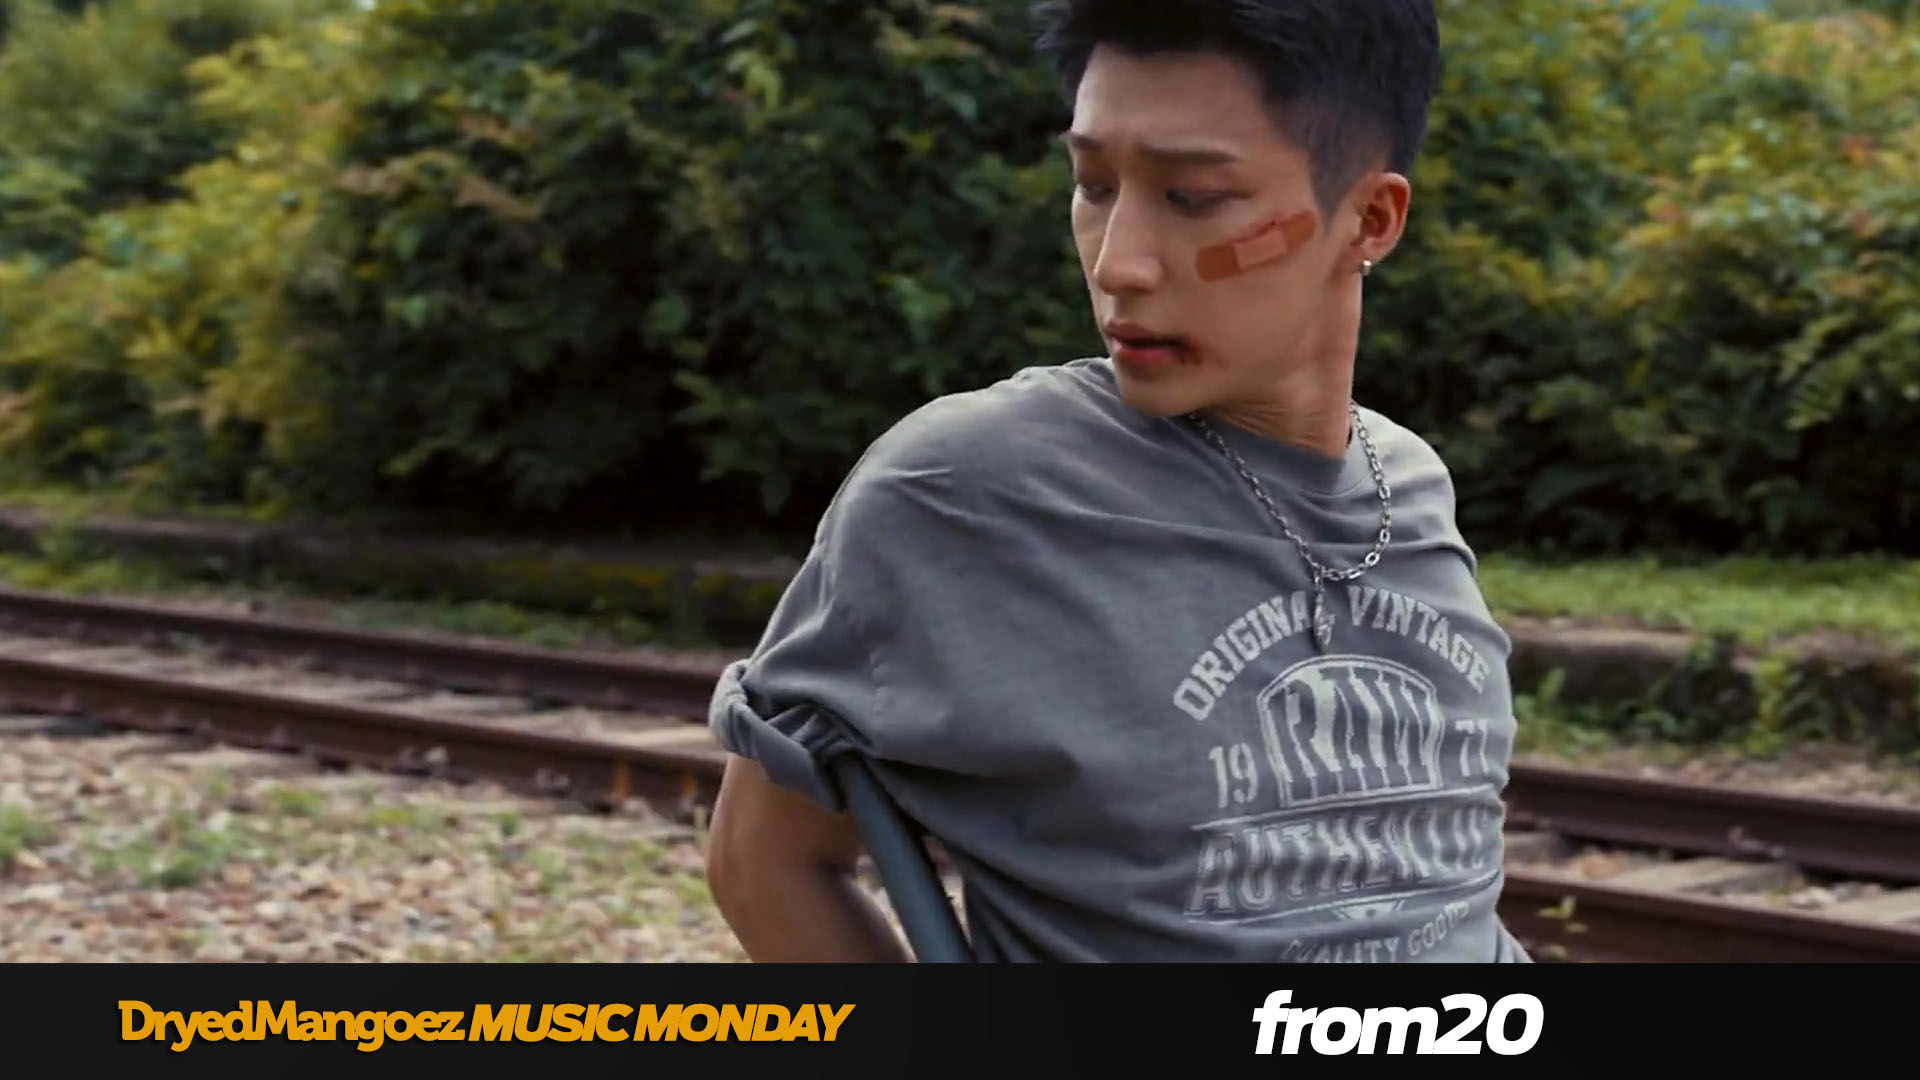 Music Monday, August 2, 2021 Extra – from20's Mesmerizing Tracks in His Solo Debut Year